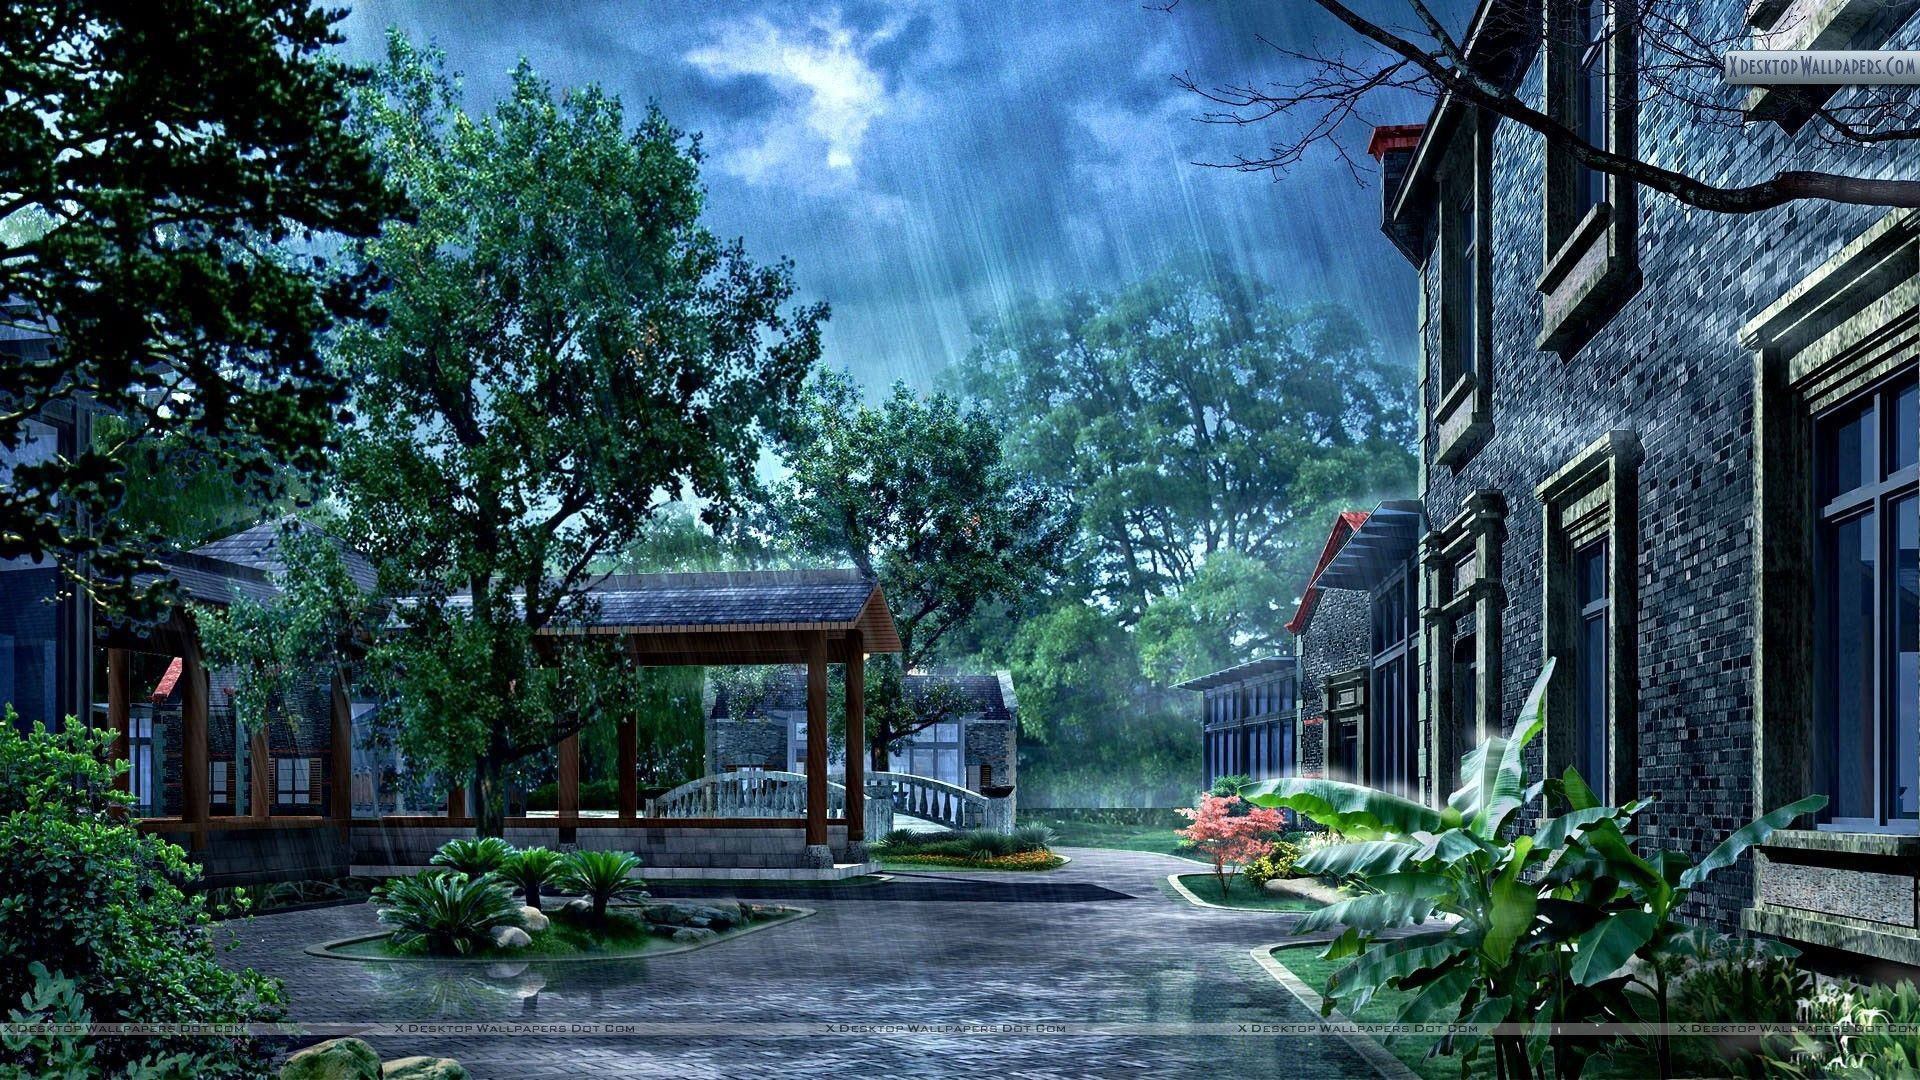 Rainy Day Wallpaper 1920×1440 Rainy Day Images Wallpapers (43 Wallpapers) |  Adorable Wallpapers | Wallpapers | Pinterest | Wallpaper